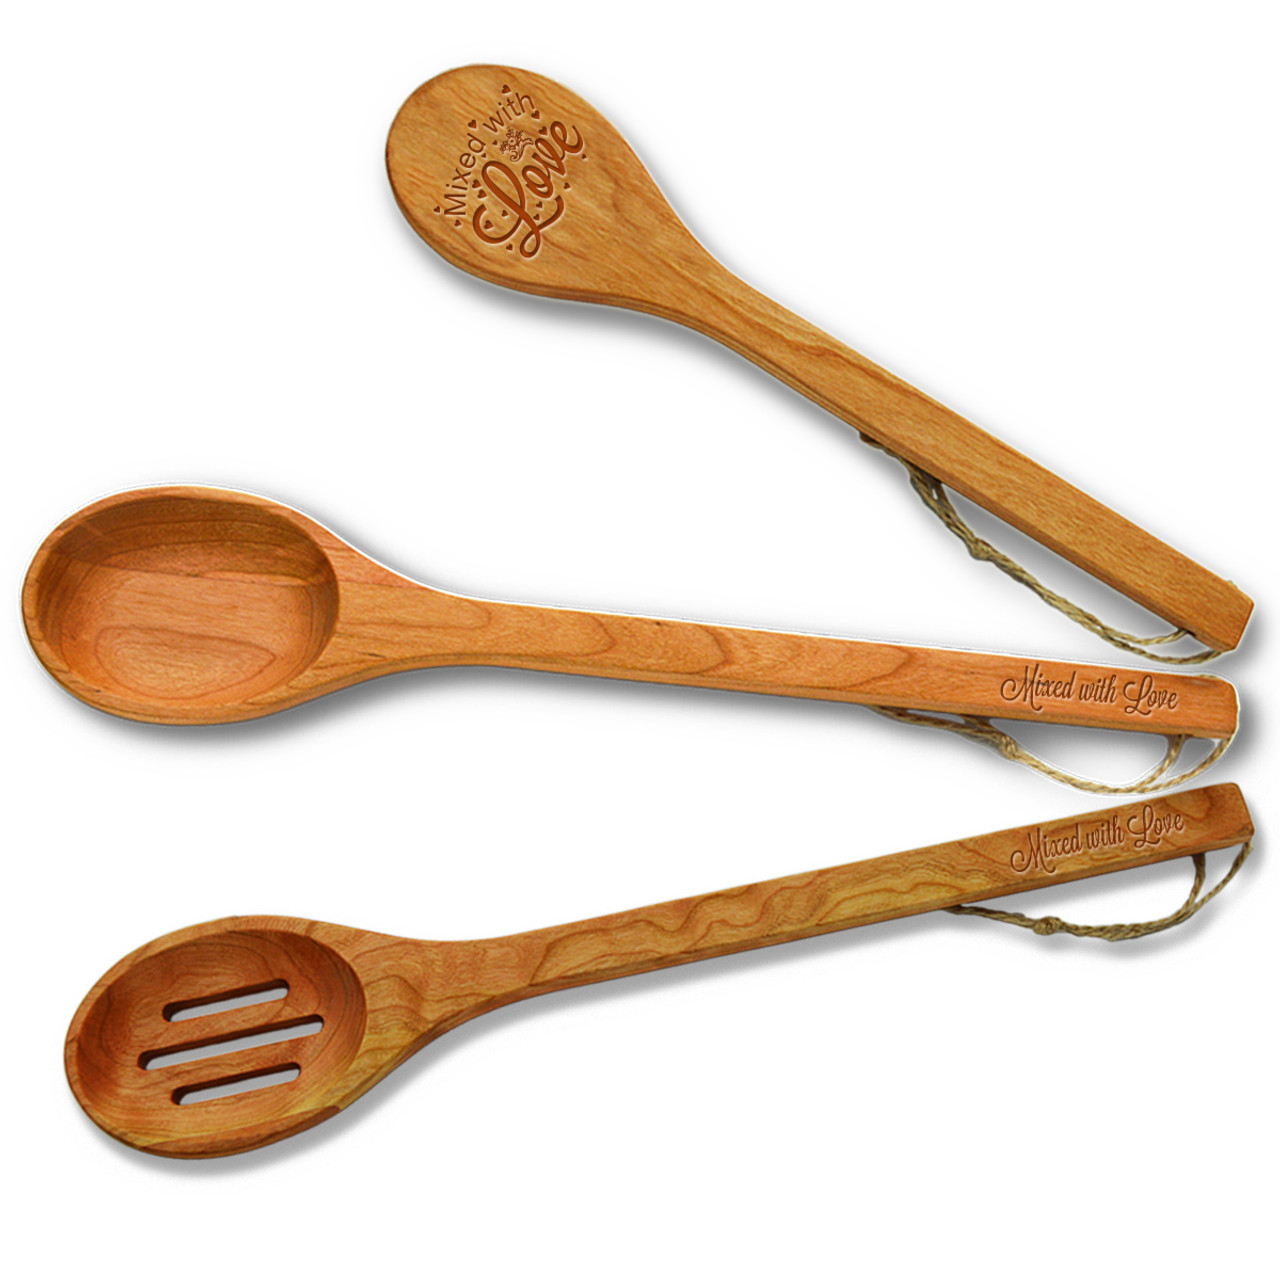 Cherry Wooden Spoon Set Mixed With Love